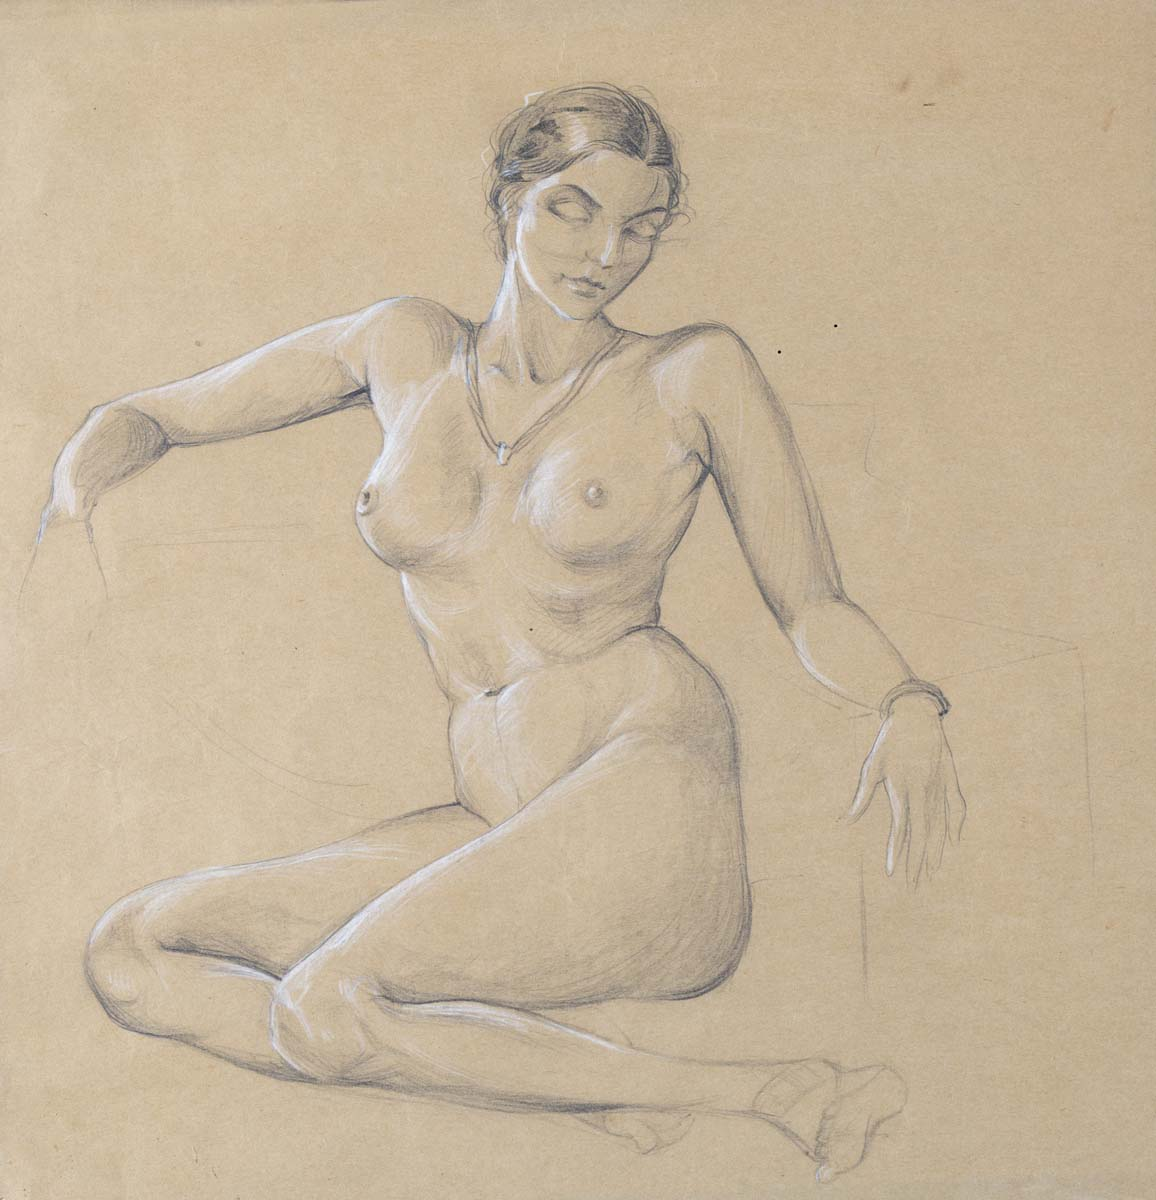 UNTITLED (Nude Study of woman sitting with White Accents)